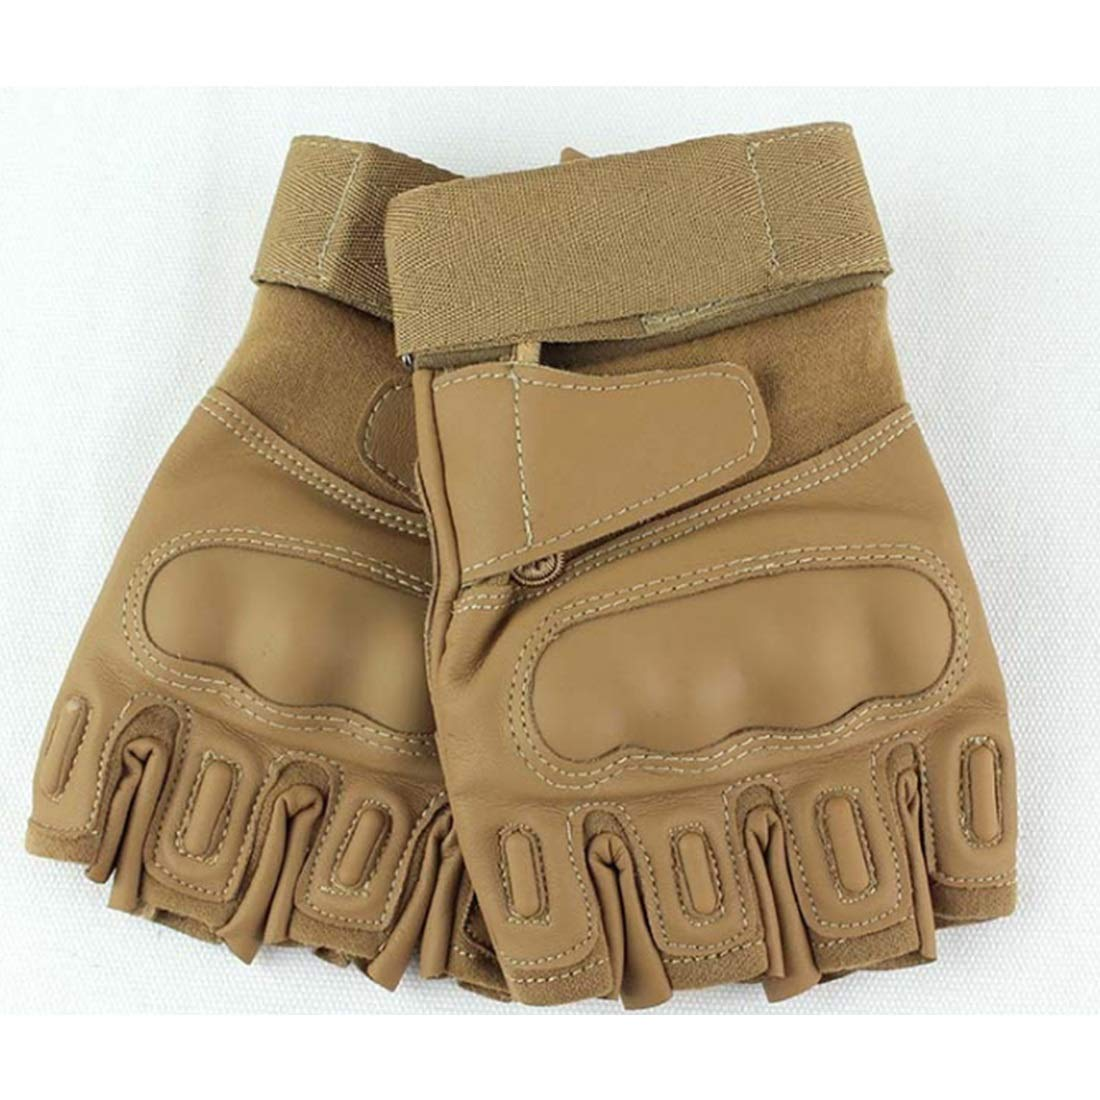 Carriemeow Outdoor Tactical Half Finger Gloves Bicycle Riding Sports Fitness Non-Slip Gloves